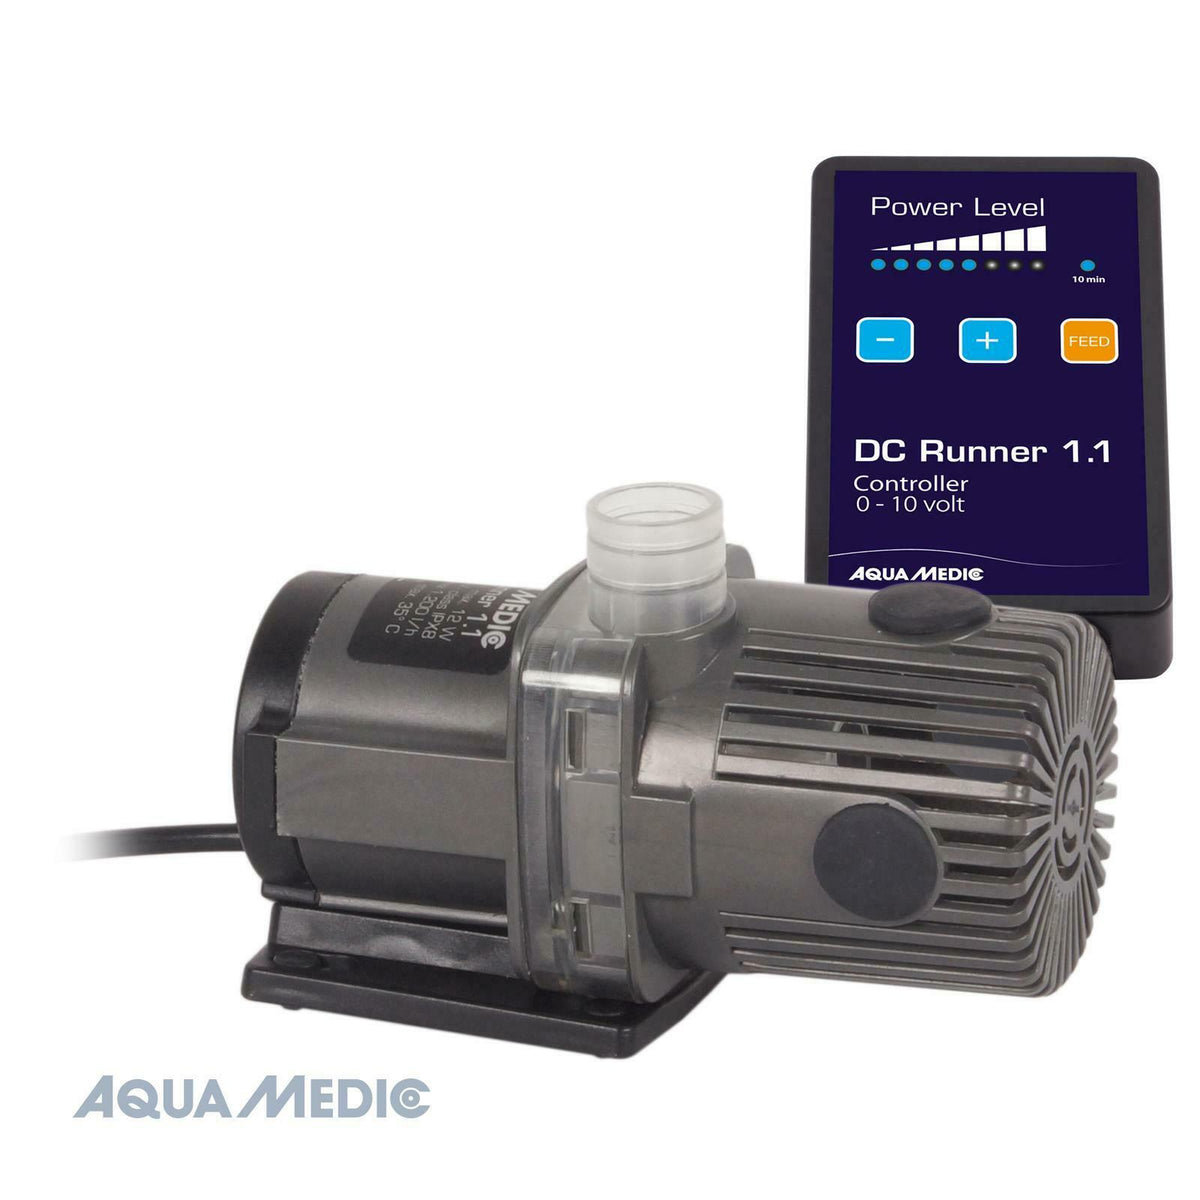 New Aquamedic Evo 1000 Protein Skimmer for marine aquariums, can hang on too